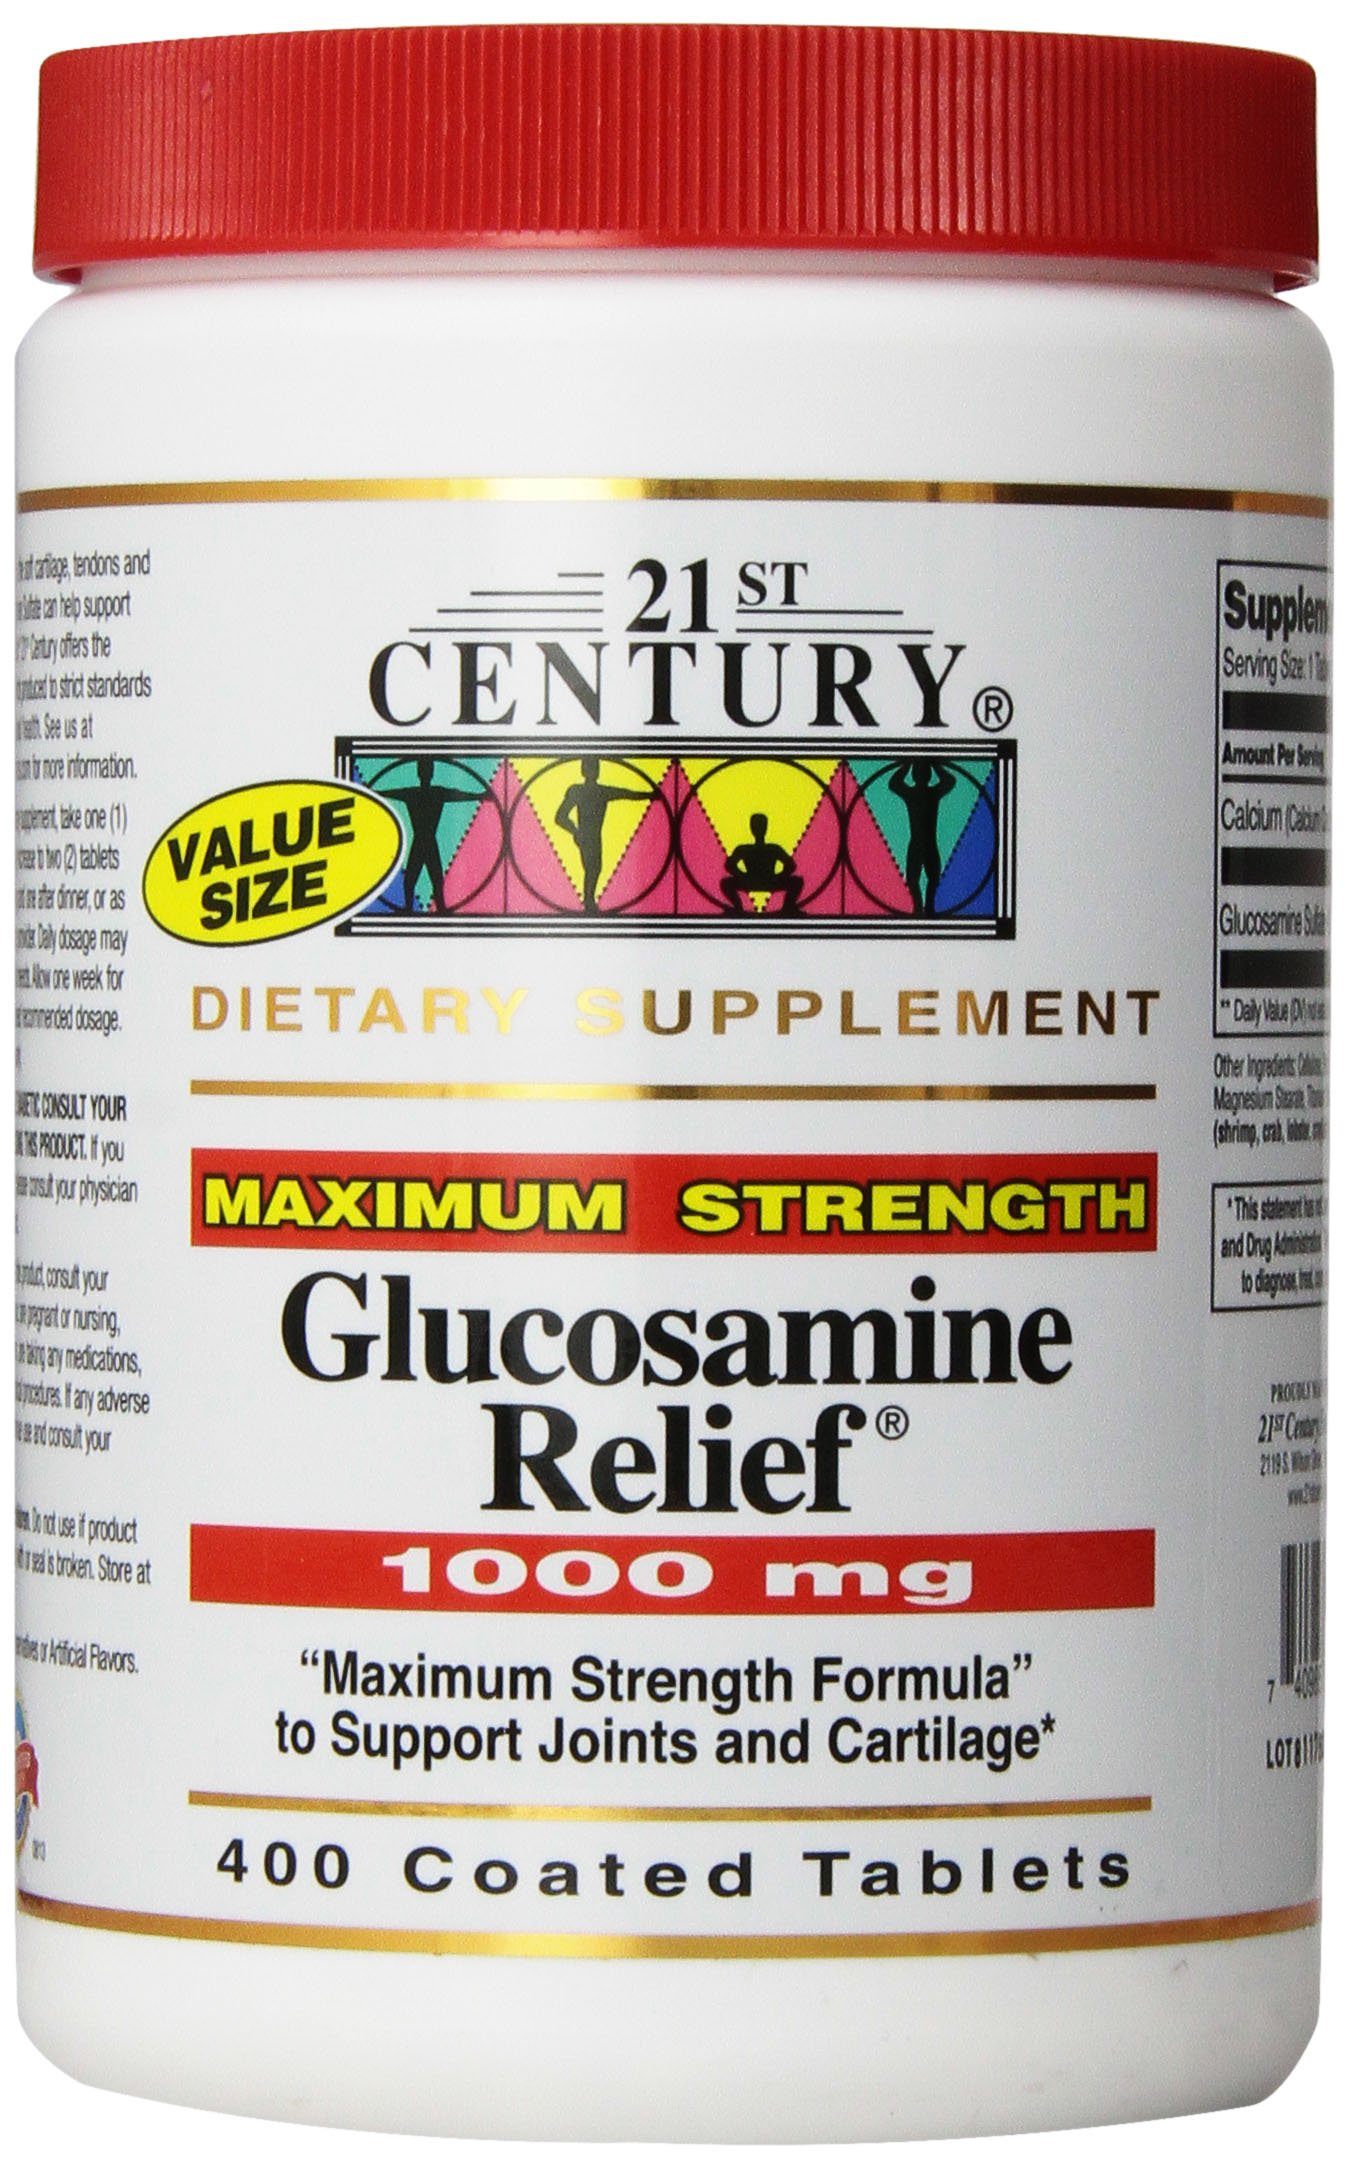 21st Century Glucosamine Relief® 1000mg Tablets, 400 Count